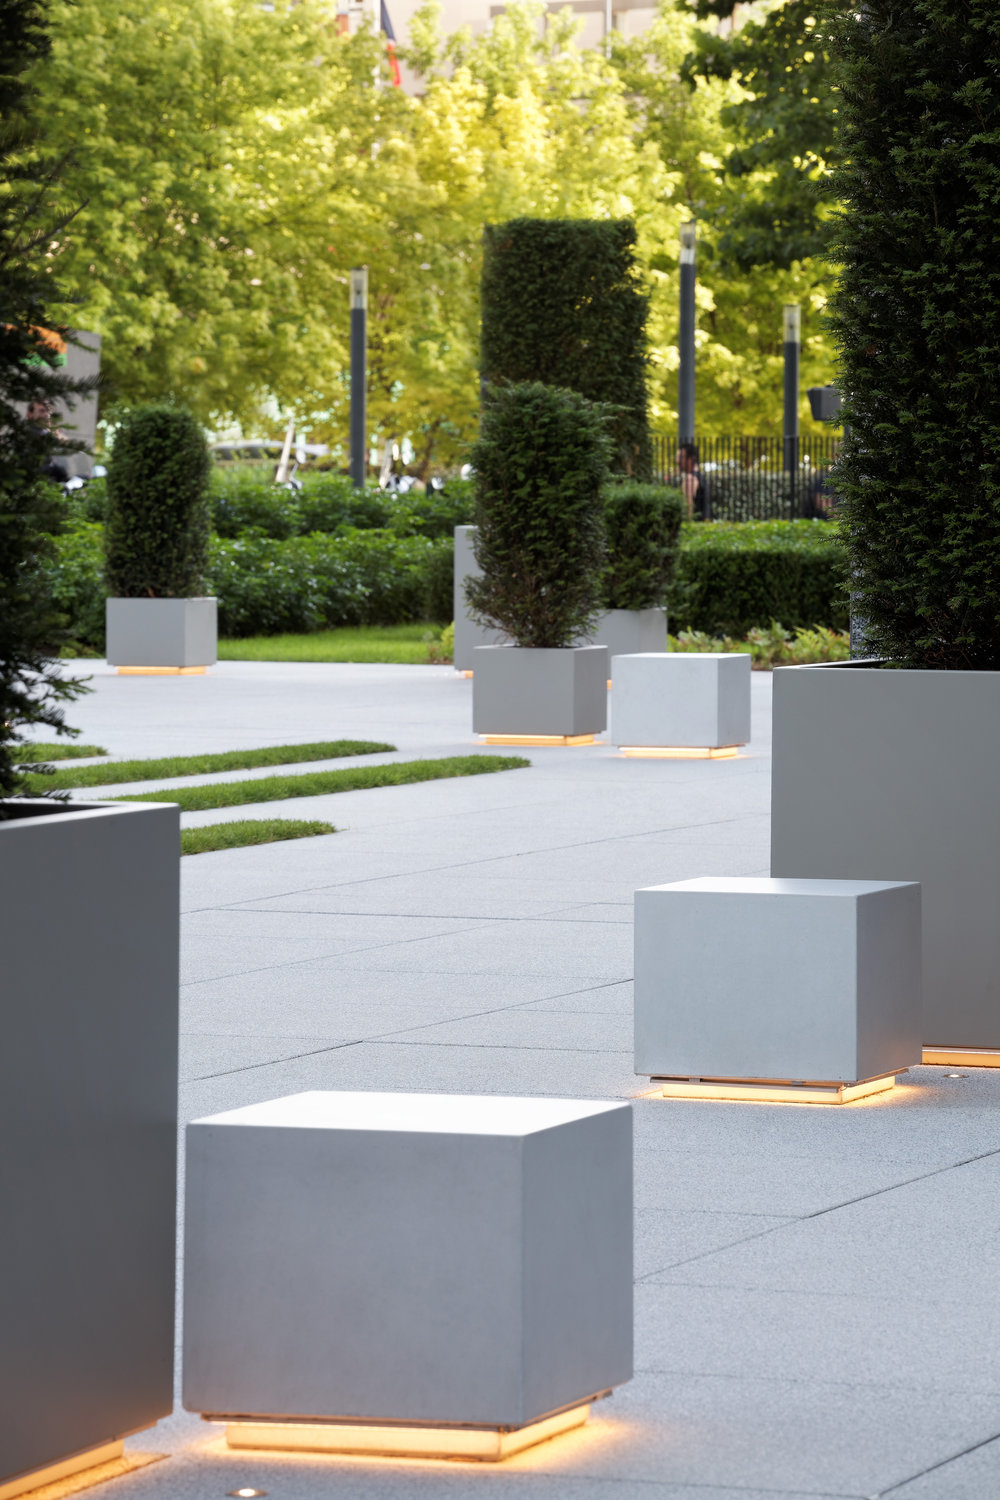 tour_europlaza_paris_la_défense_terrasses_jardins_outdoor_garden_christophe_gautrand_paysagiste_6.jpg